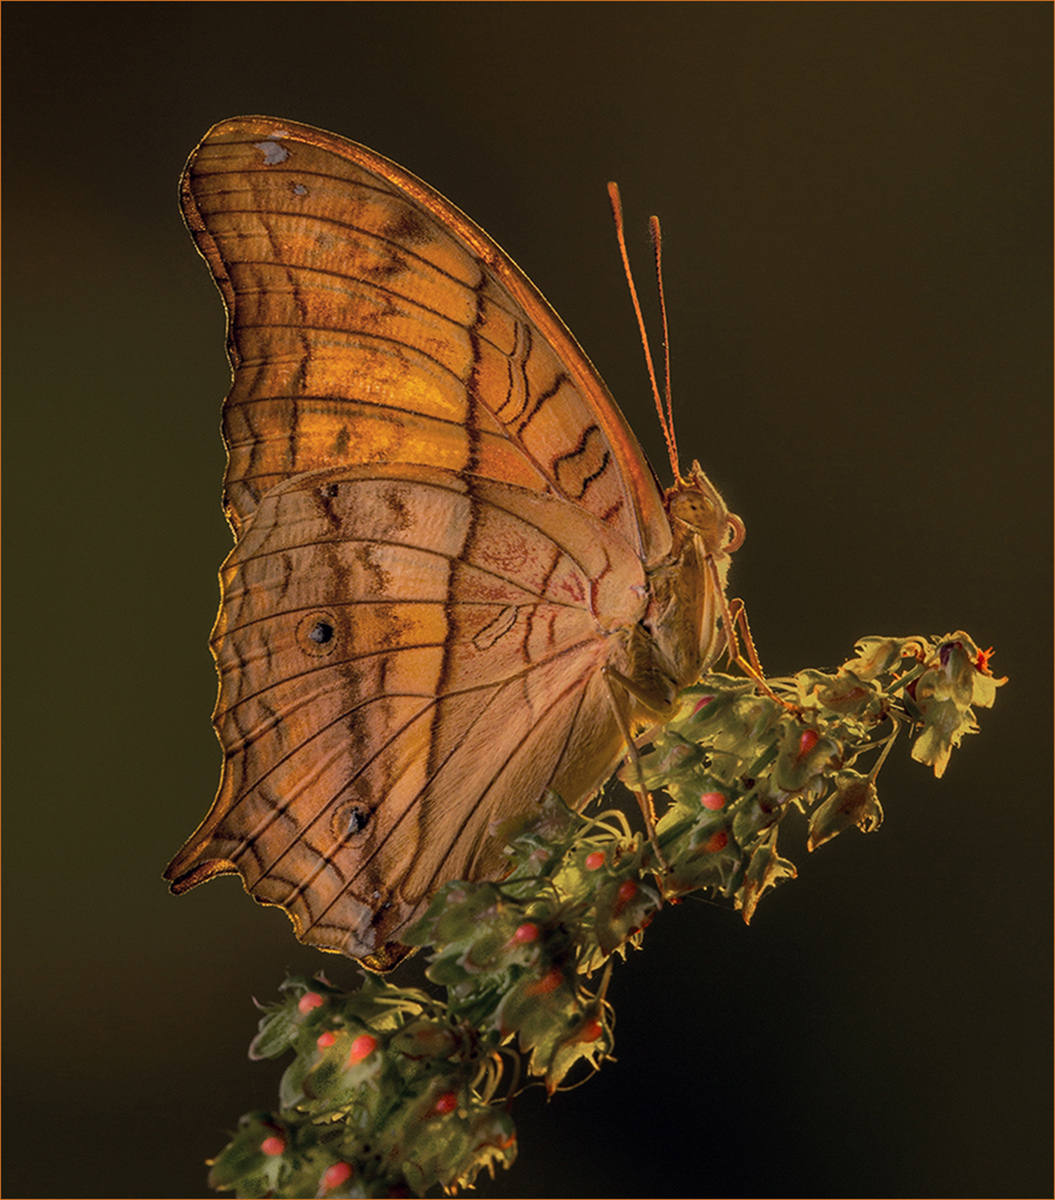 Commended_Thai-Cruiser-Butterfly_by_Paul-Wagstaff